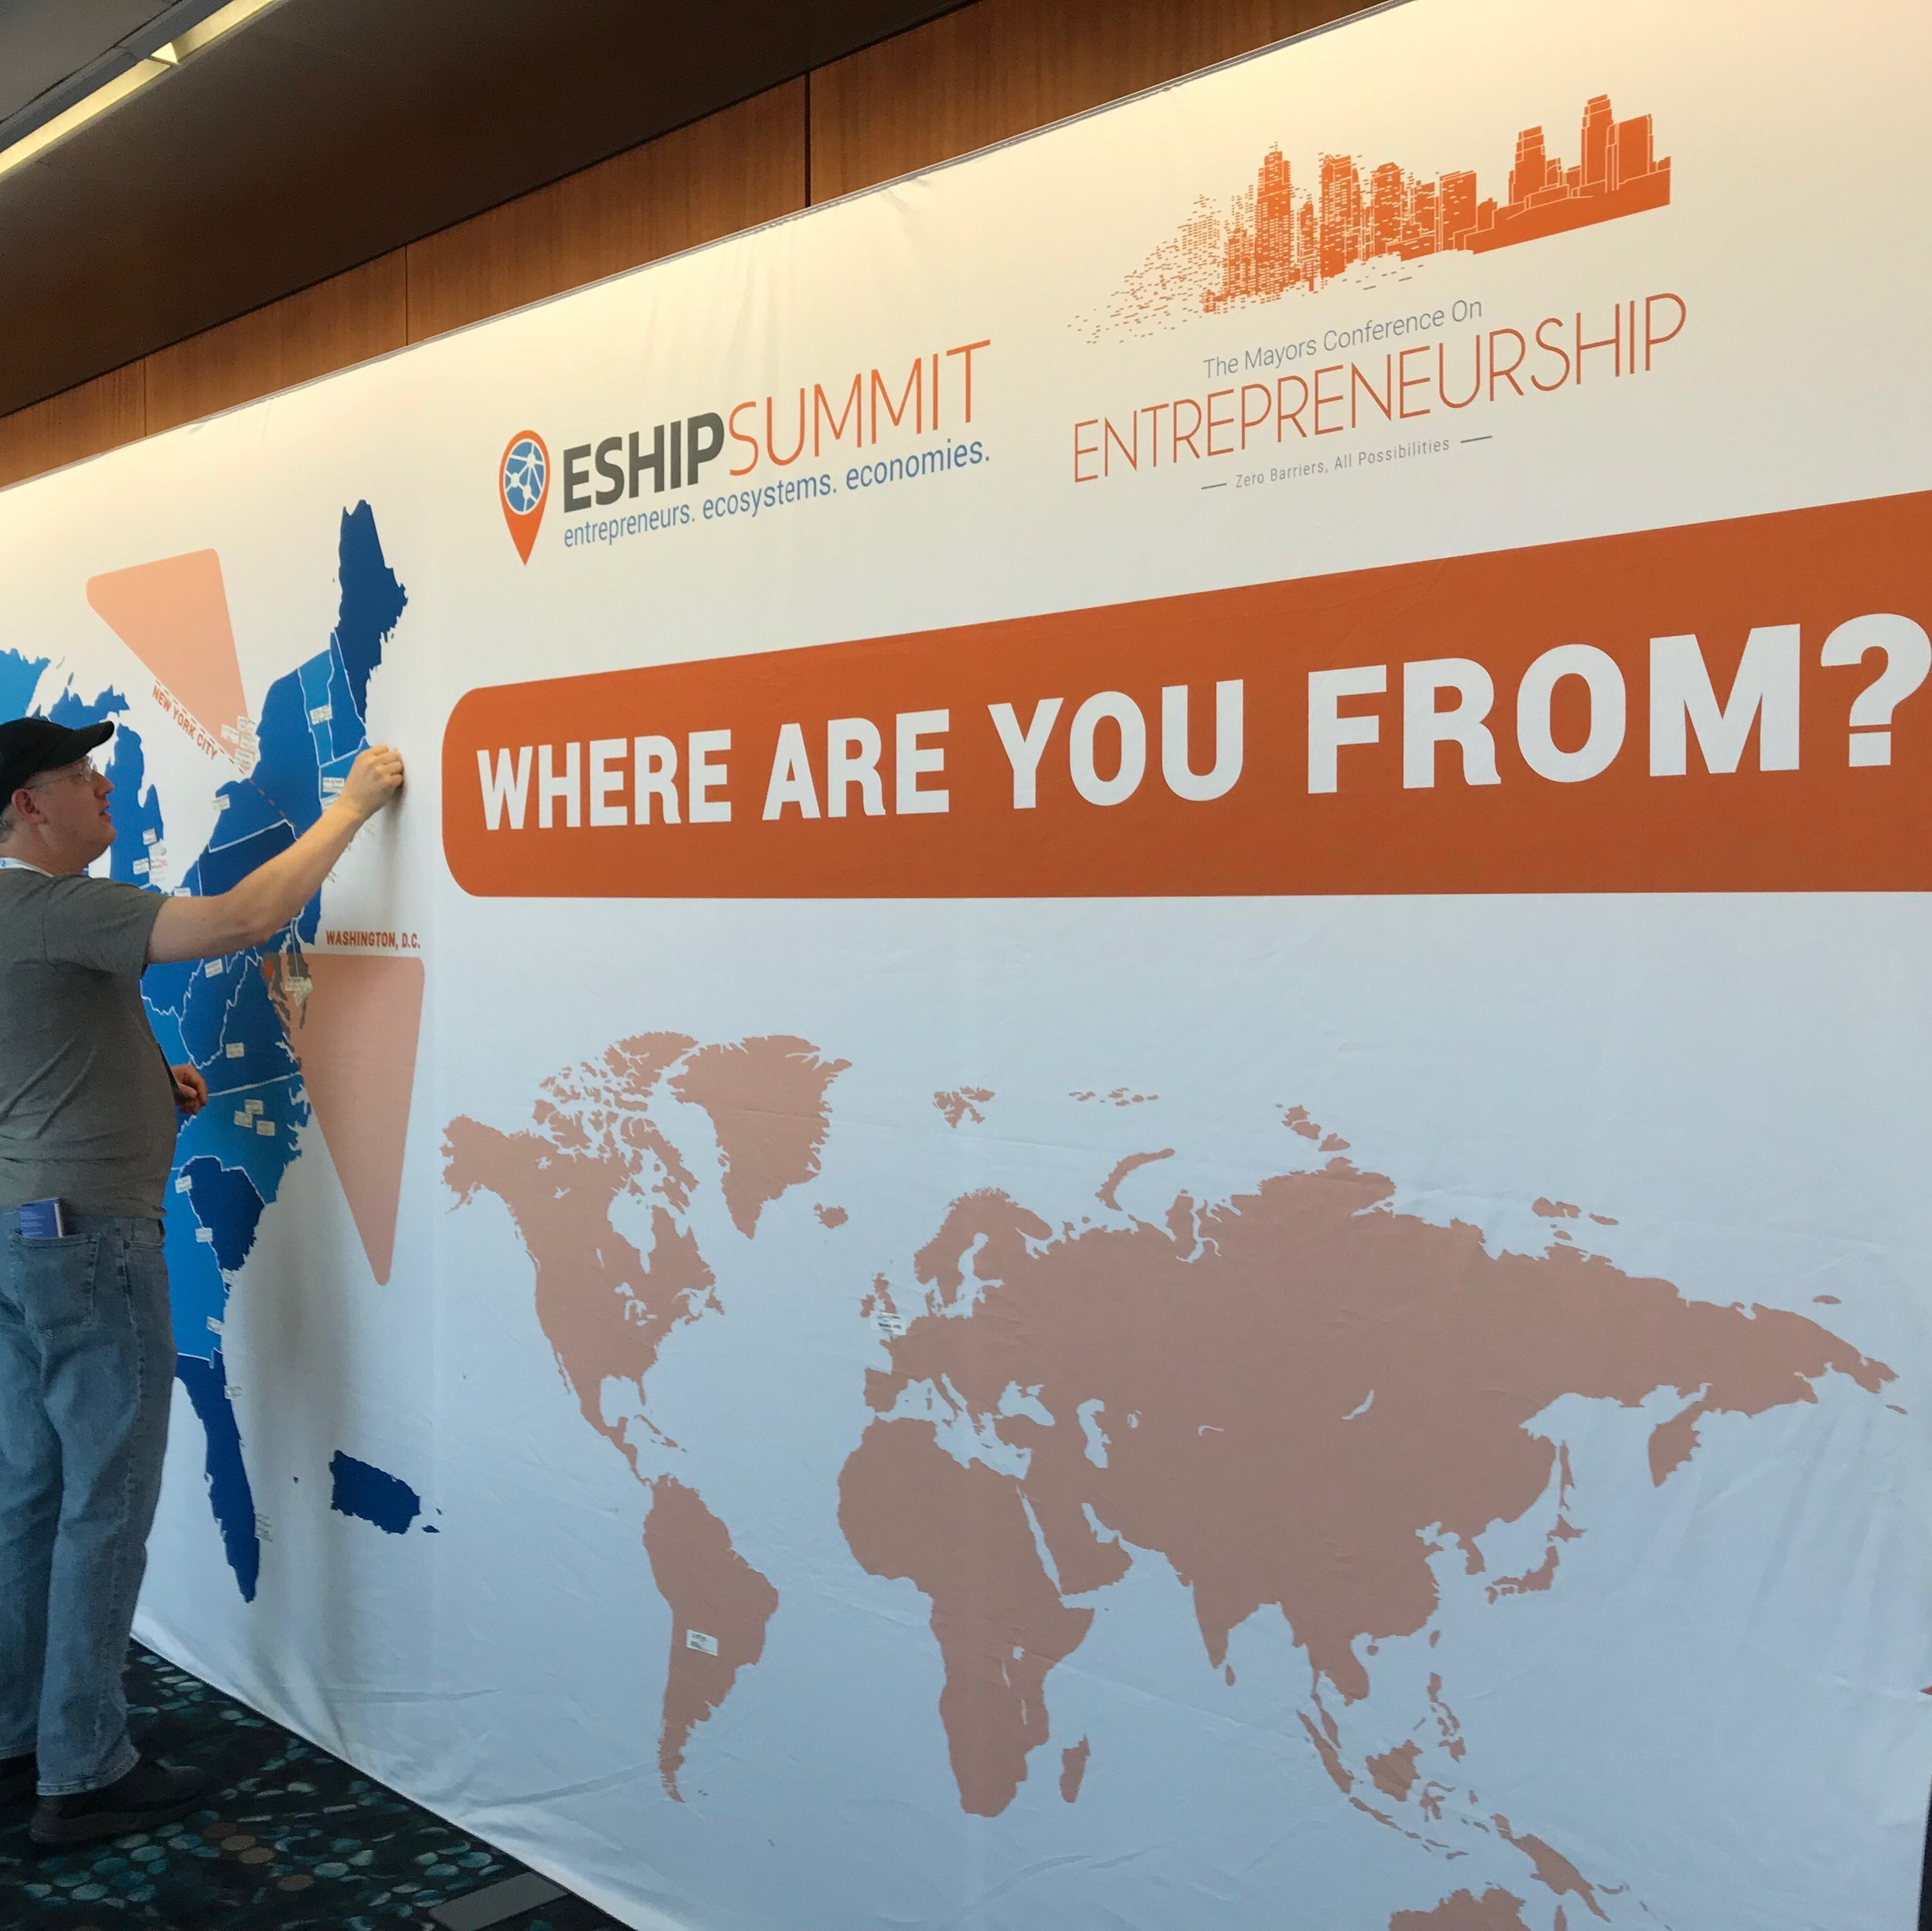 An attendee of the ESHIP conference adds his hometown to a map of the world.